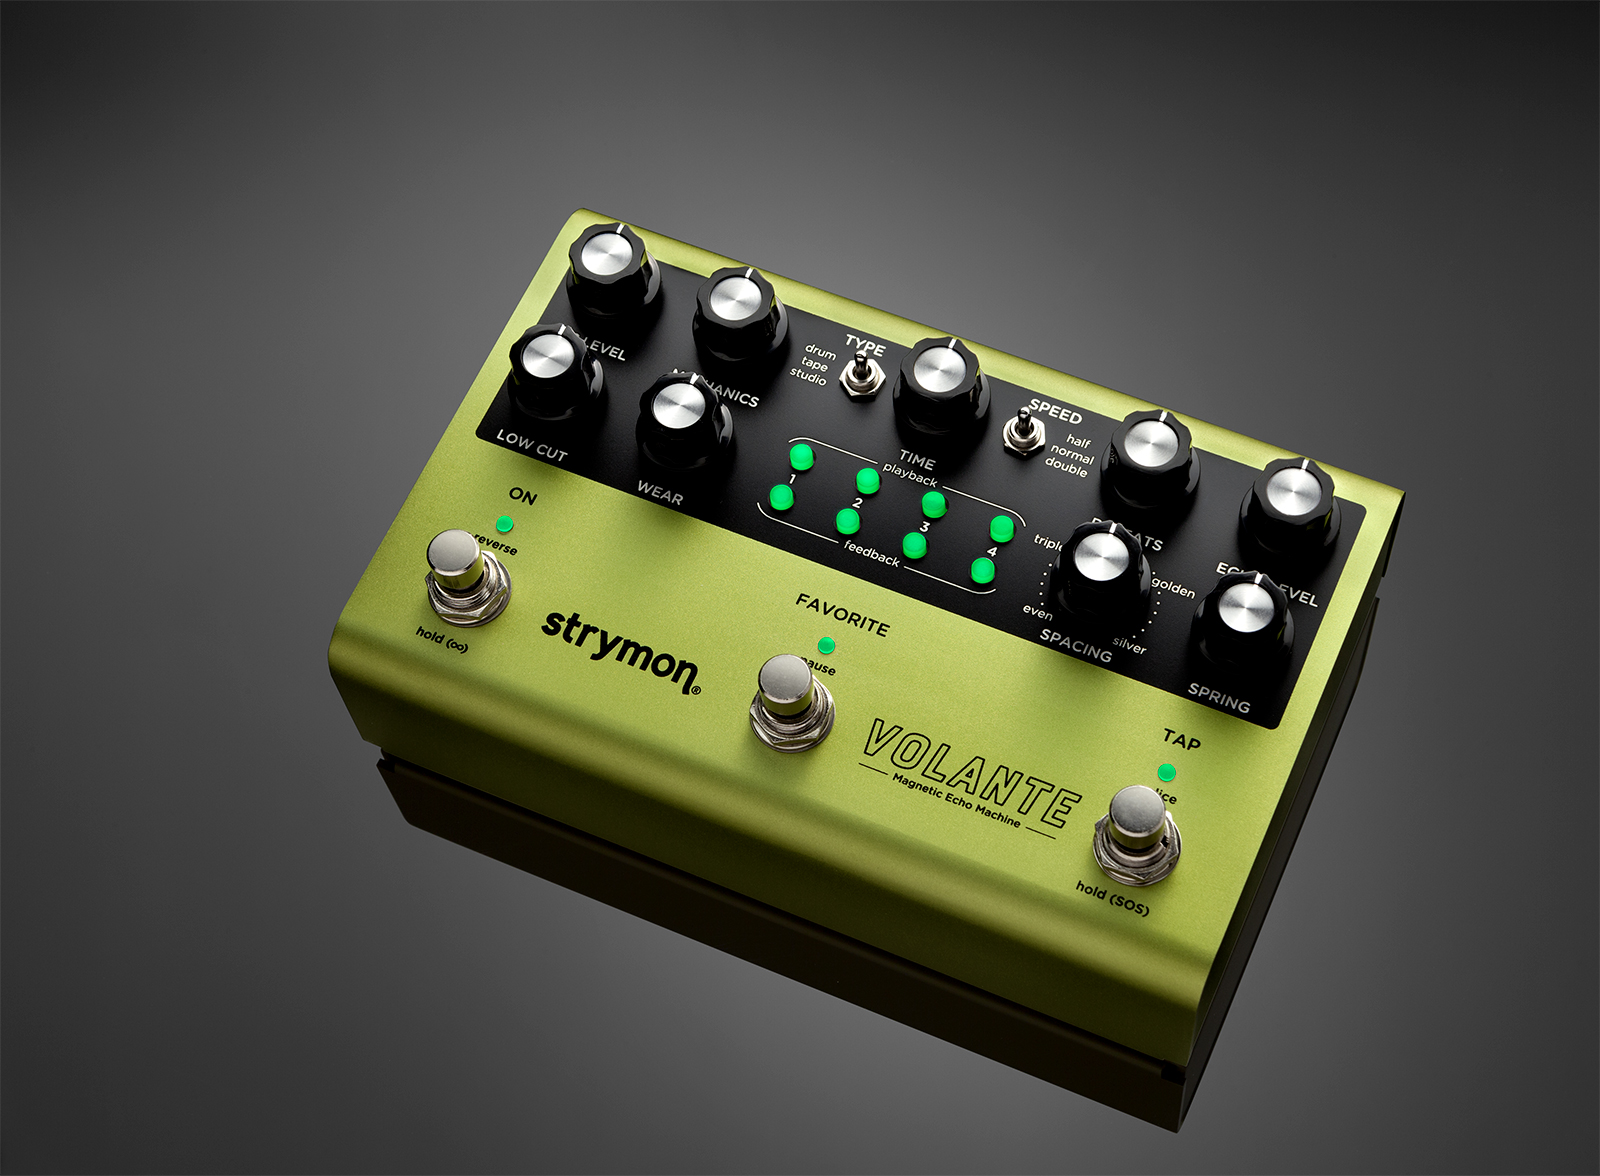 Strymon's Volante is a new, lush-sounding magnetic echo FX pedal